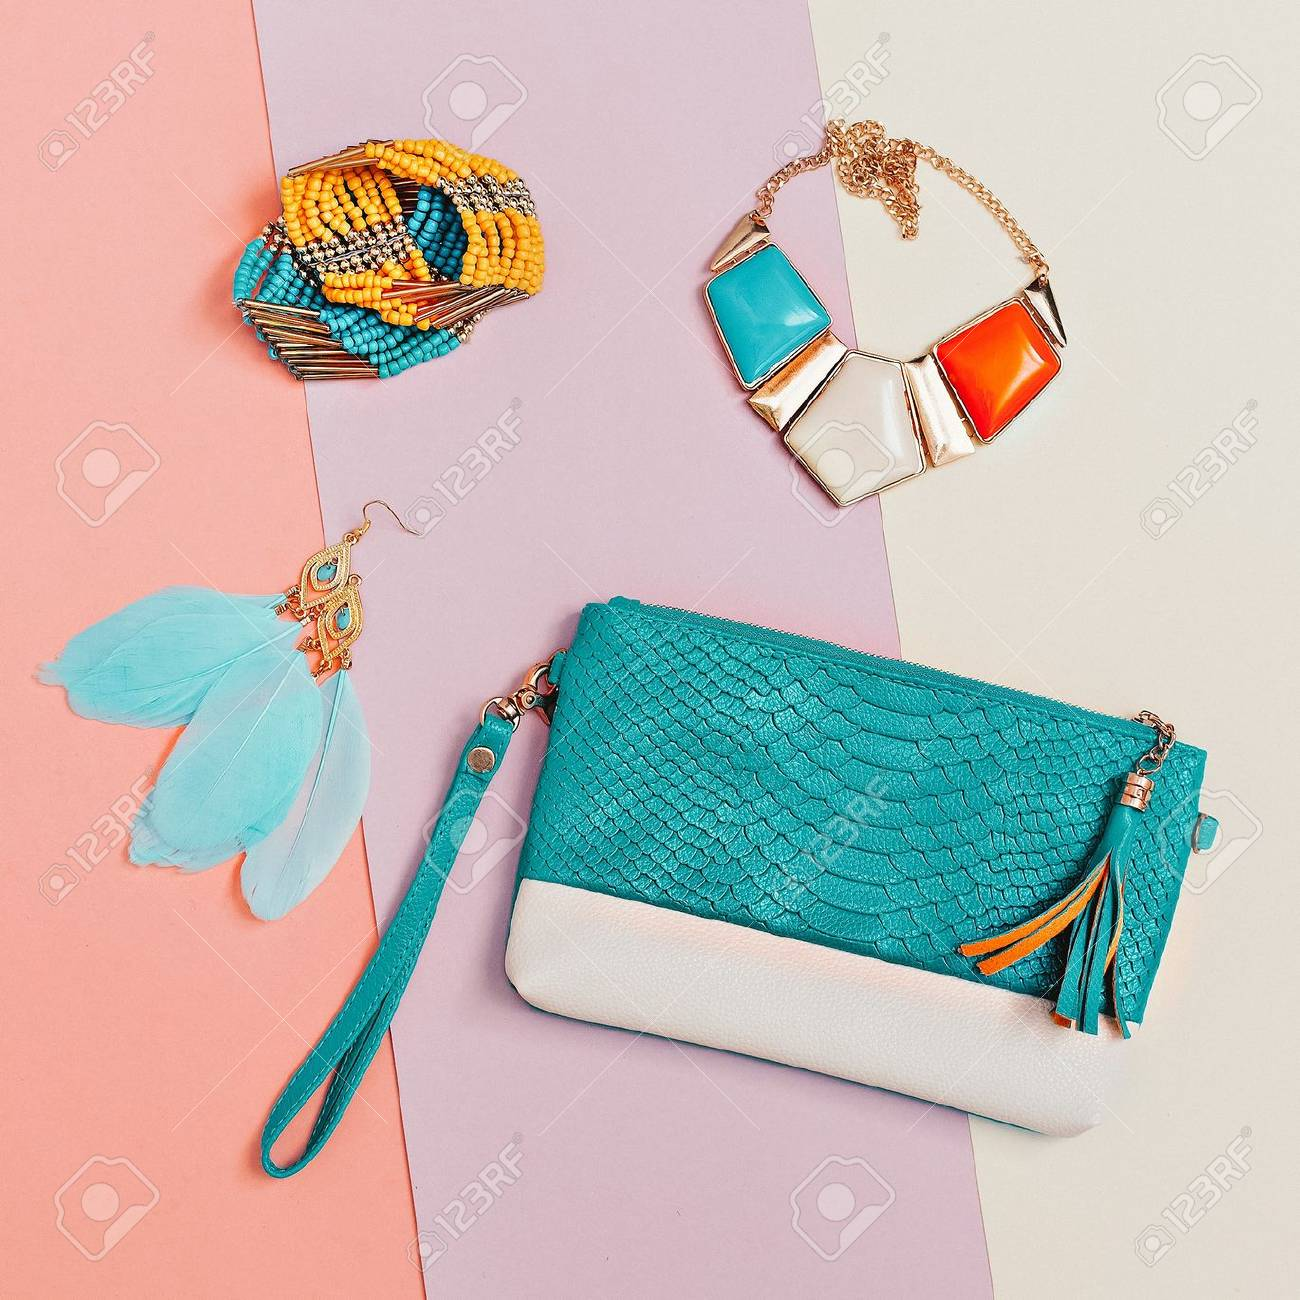 Be stylish. Fashionable Lady's accessories. Necklaces, bracelets, earrings, clutch. Detail fashion - 74135705